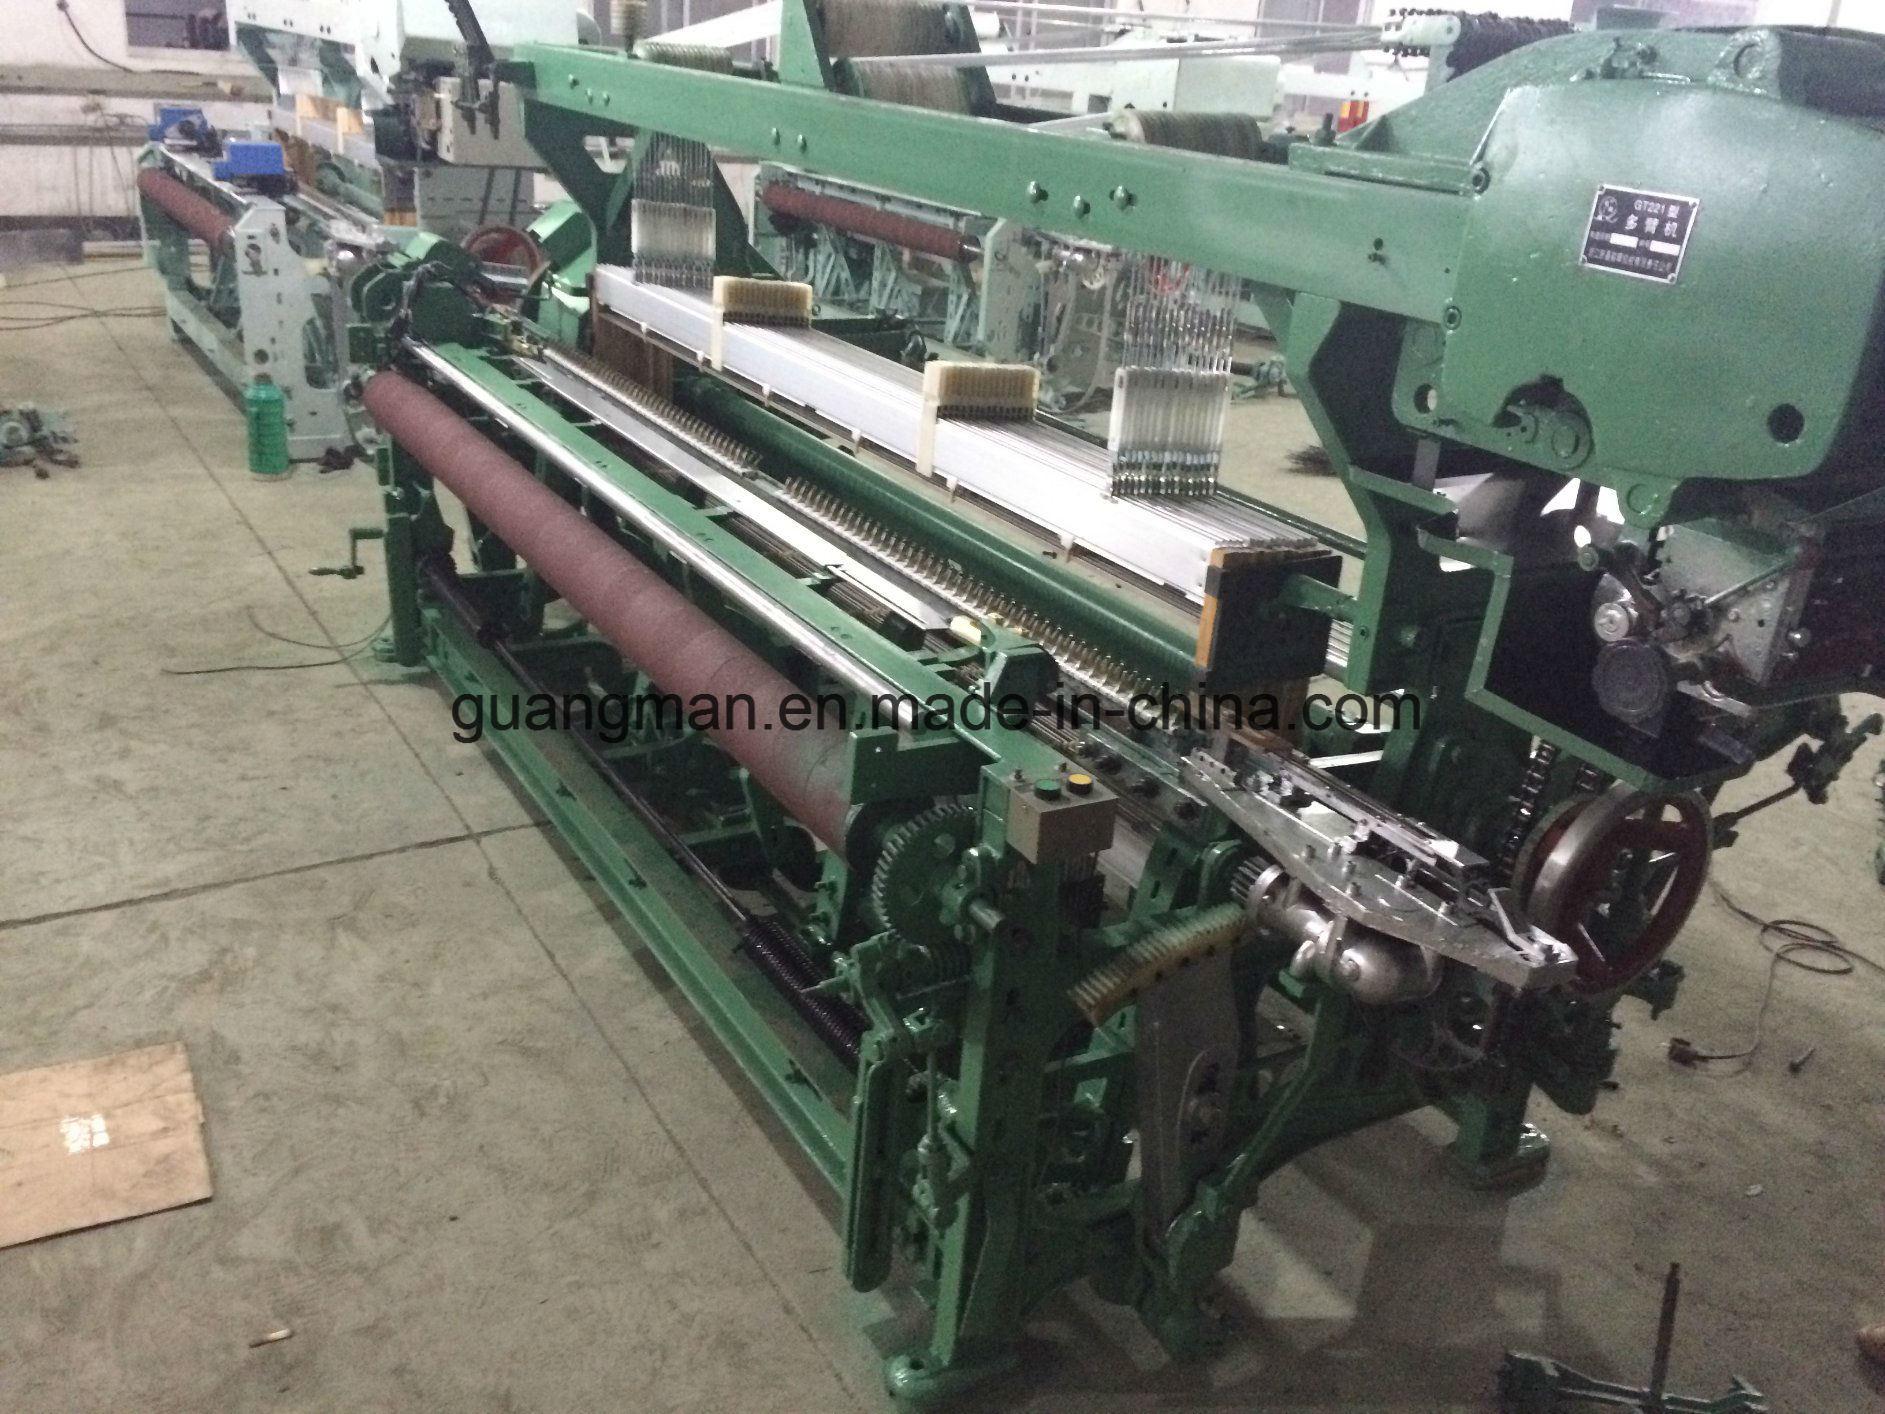 Hyr747-R200t Recondition Rapier Loom